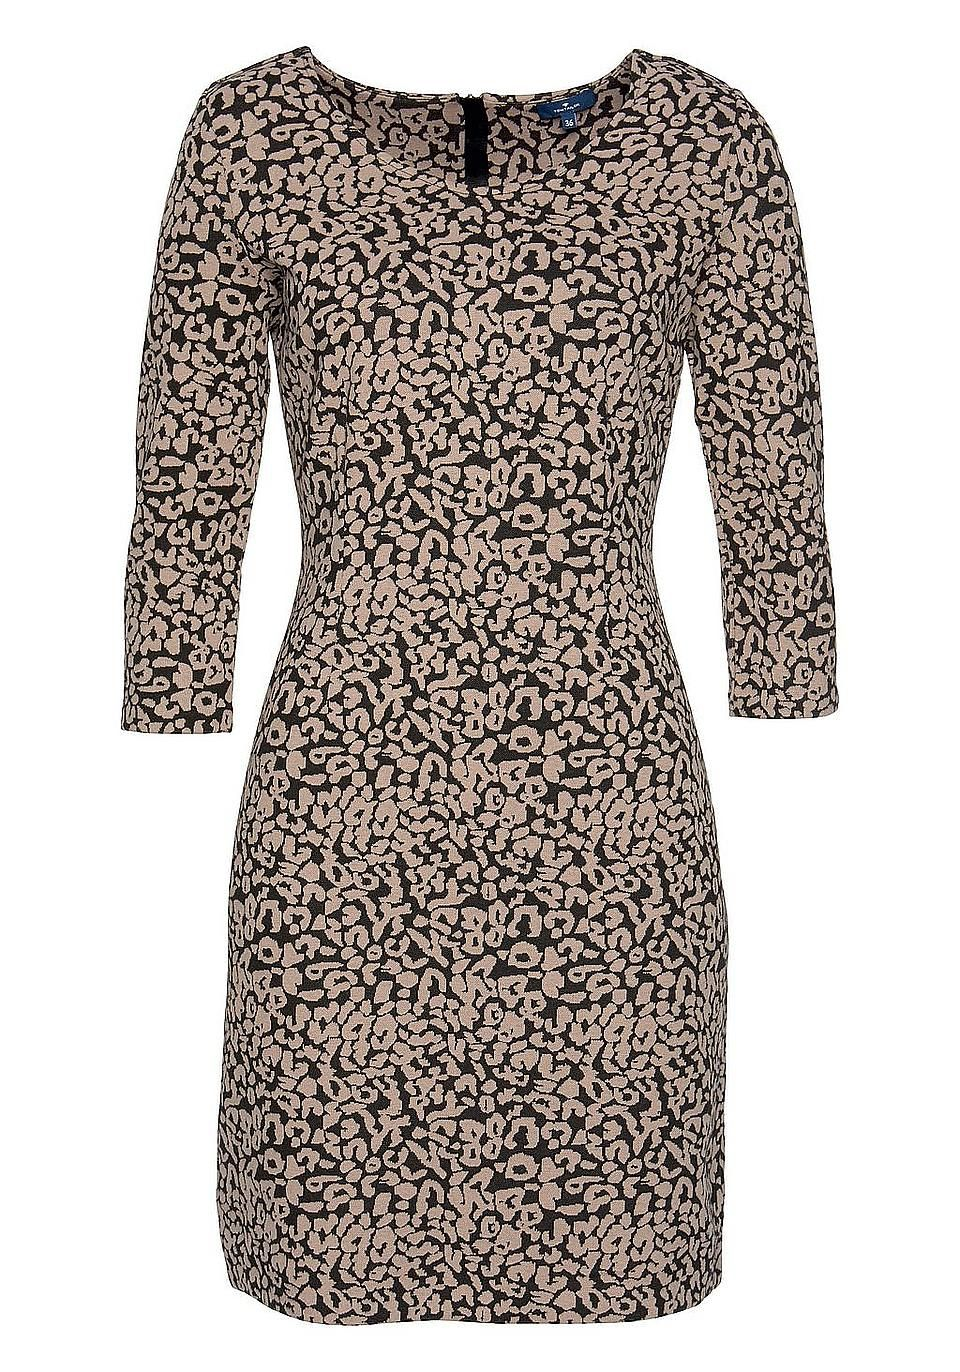 nice shoes for whole family classic fit Tom Tailor Jerseykleid | Animal Print | BAUR | Kleider ...